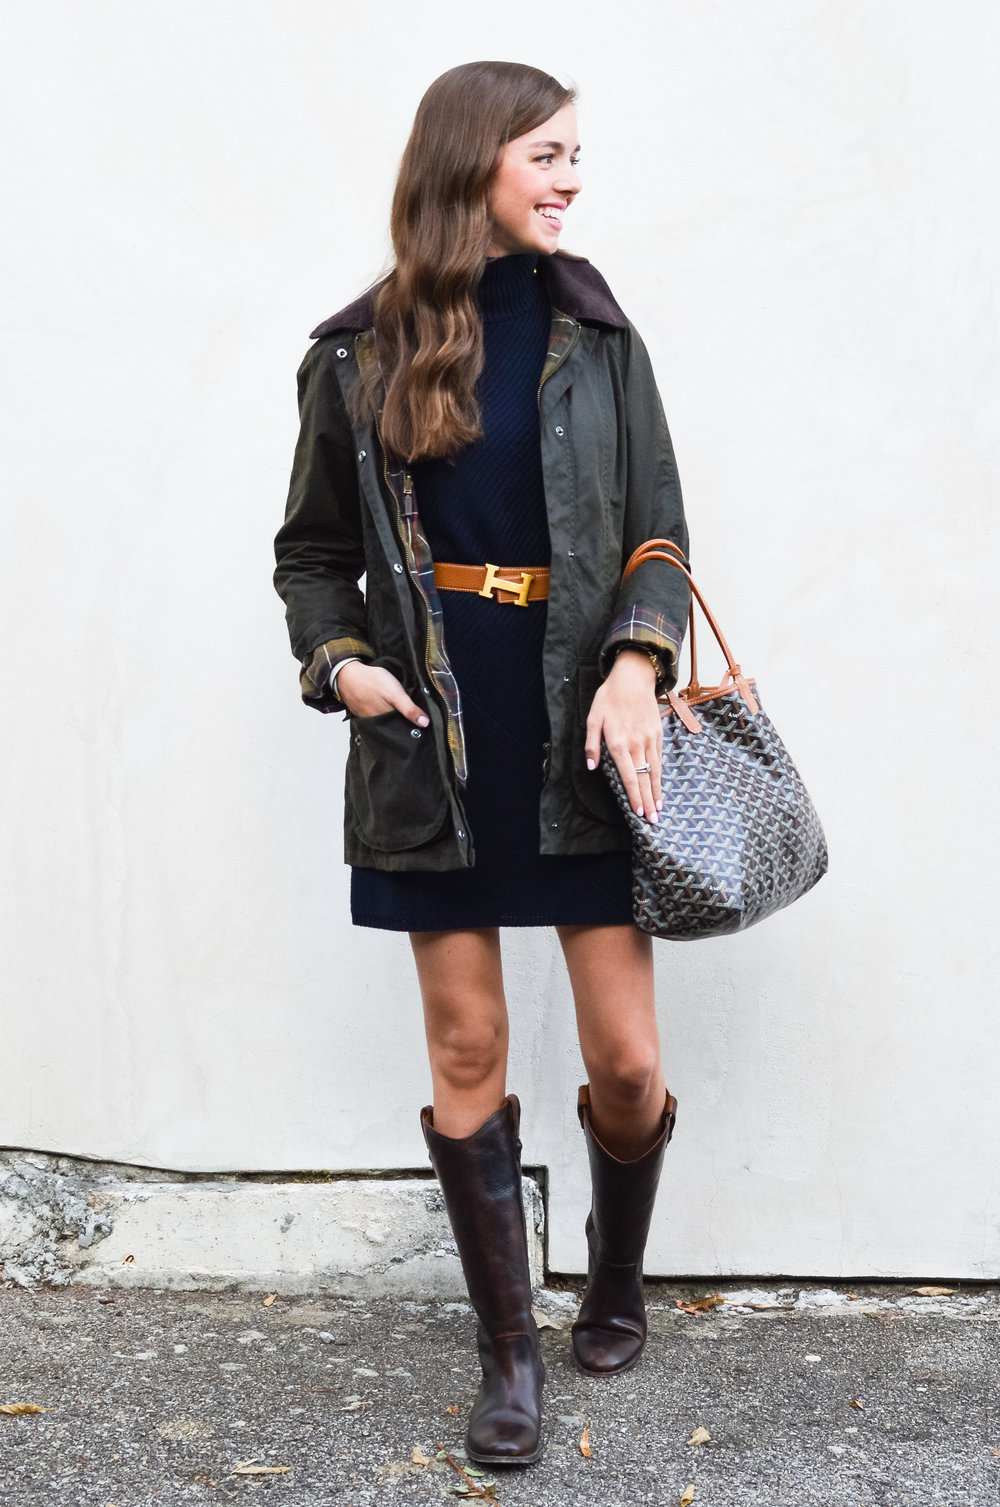 fashion blogger lcb style tory burch sweater dress frye boots barbour beadnell jacket  (5 of 43).jpg